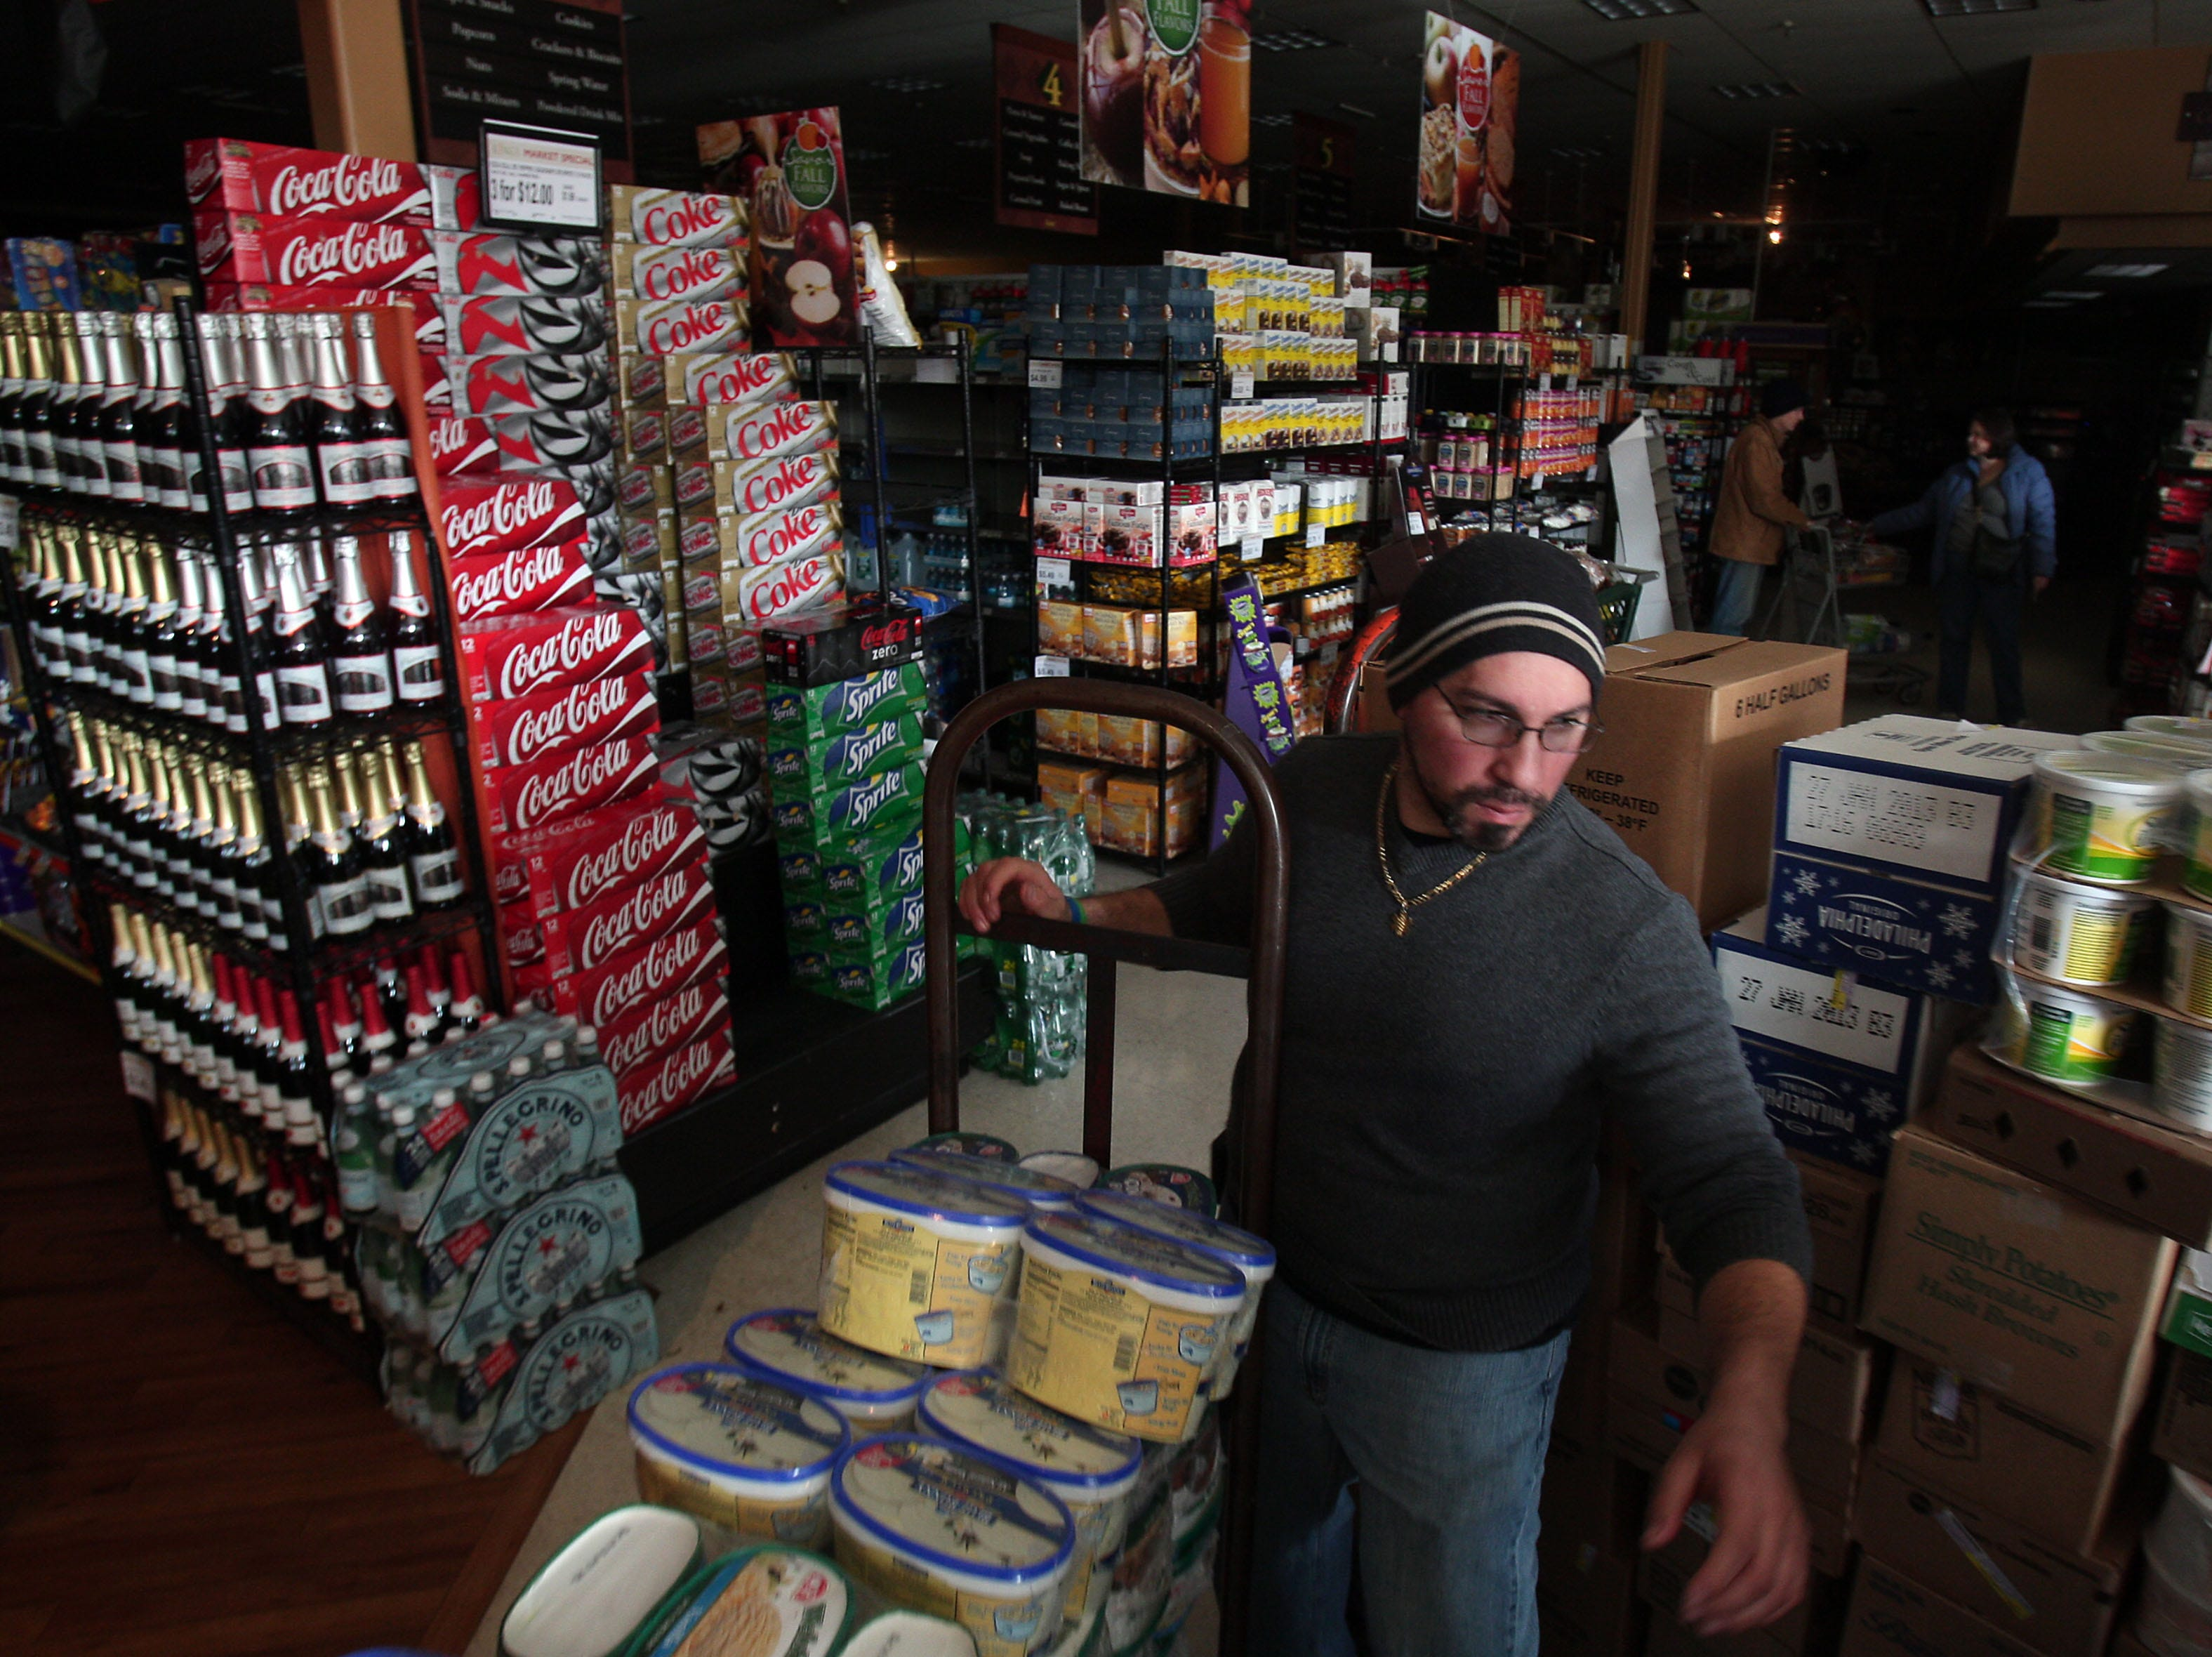 Chatham, NJ- November 1, 2012--Produce Manager Mike Toscano of Watchung, NJ packs up perishables to be thrown away at Kings in Chatham, NJ after the supermarket lost most of its power after Hurricane Sandy devastated the eastern seaboard.Bob Karp/Staff Photographer/DAILY RECORD